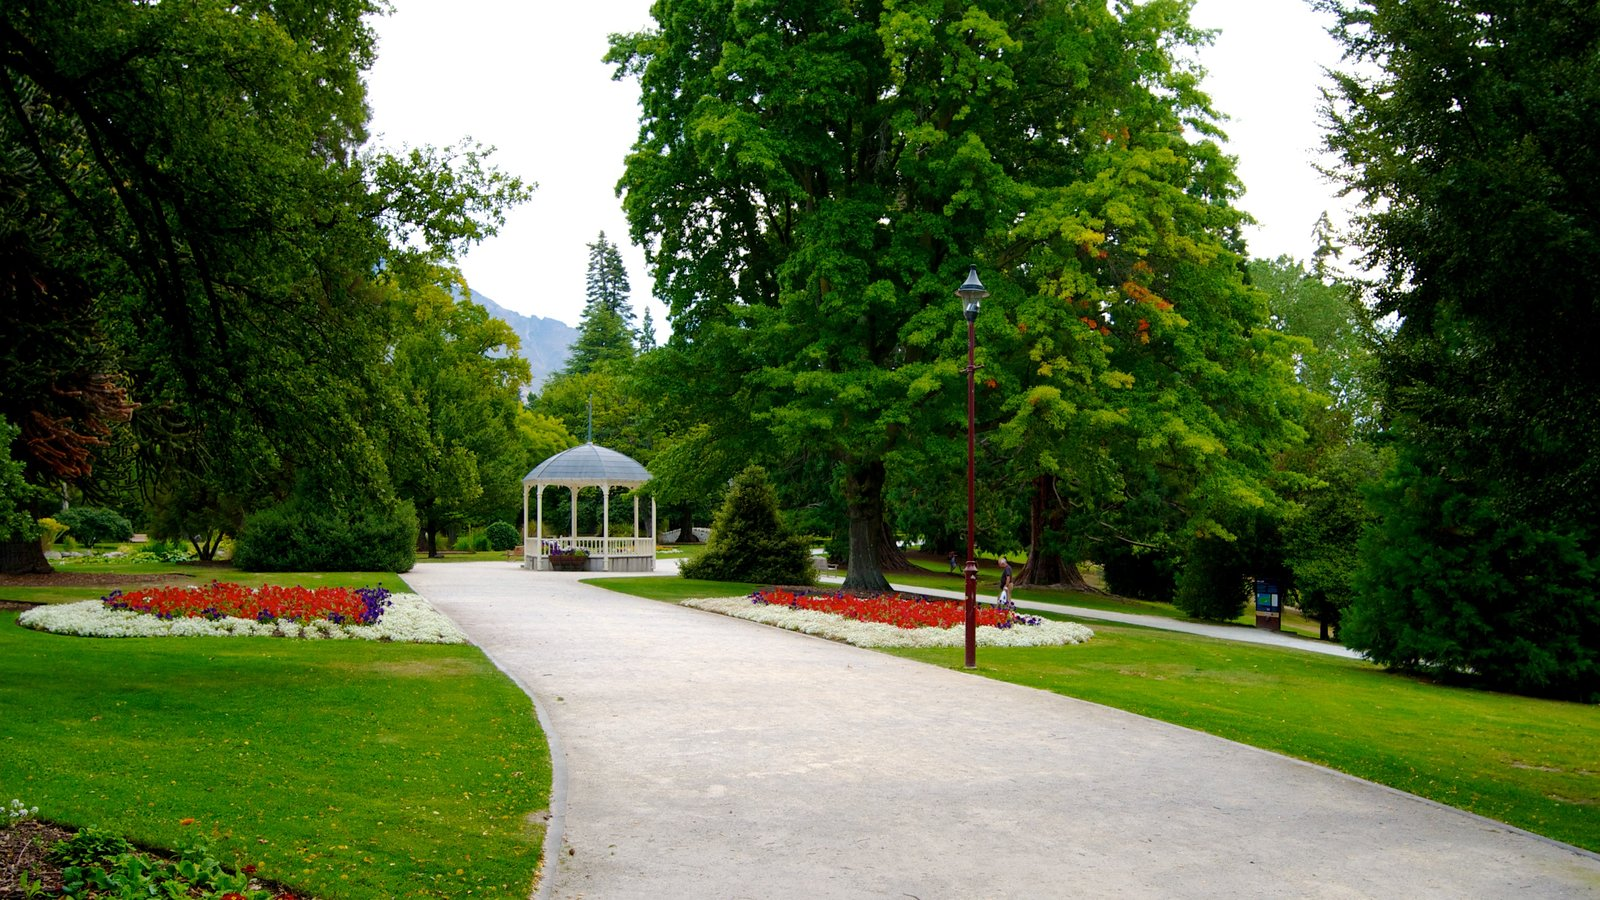 Queenstown Gardens which includes landscape views and a park